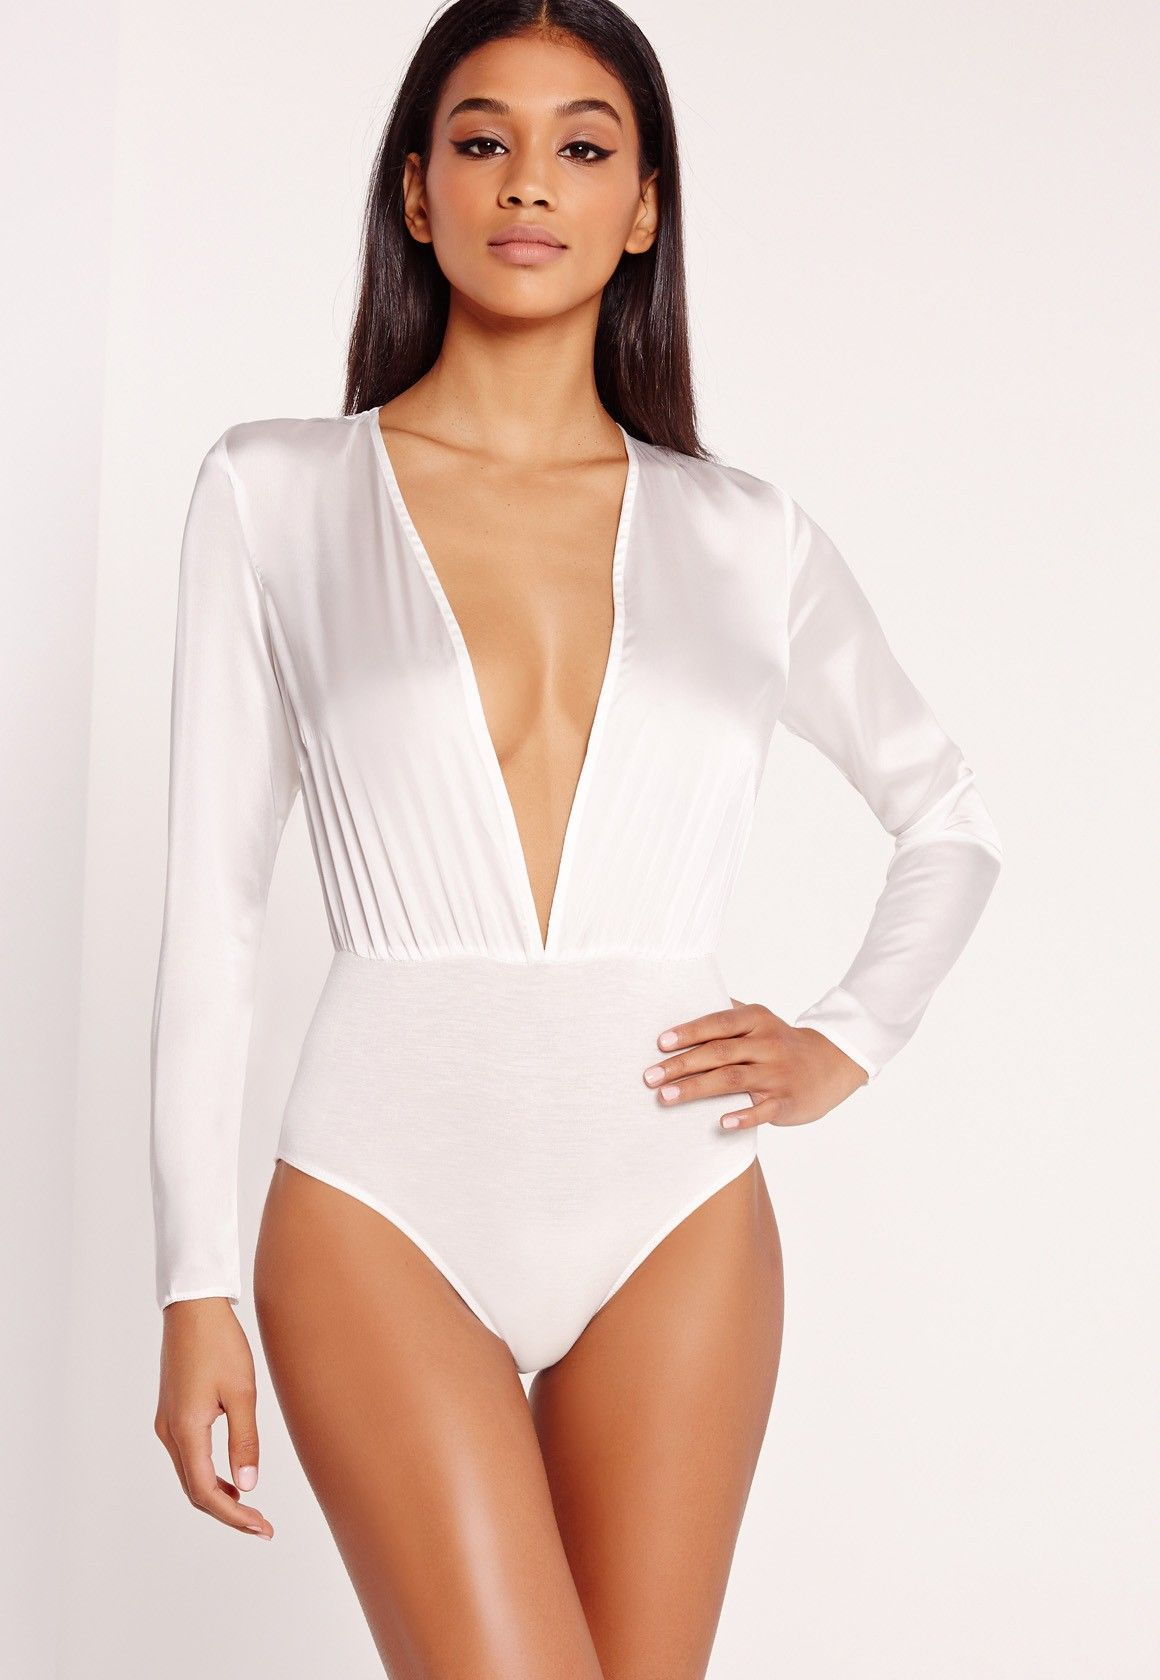 Missguided - Hammered Satin Bodysuit White  7263b014c